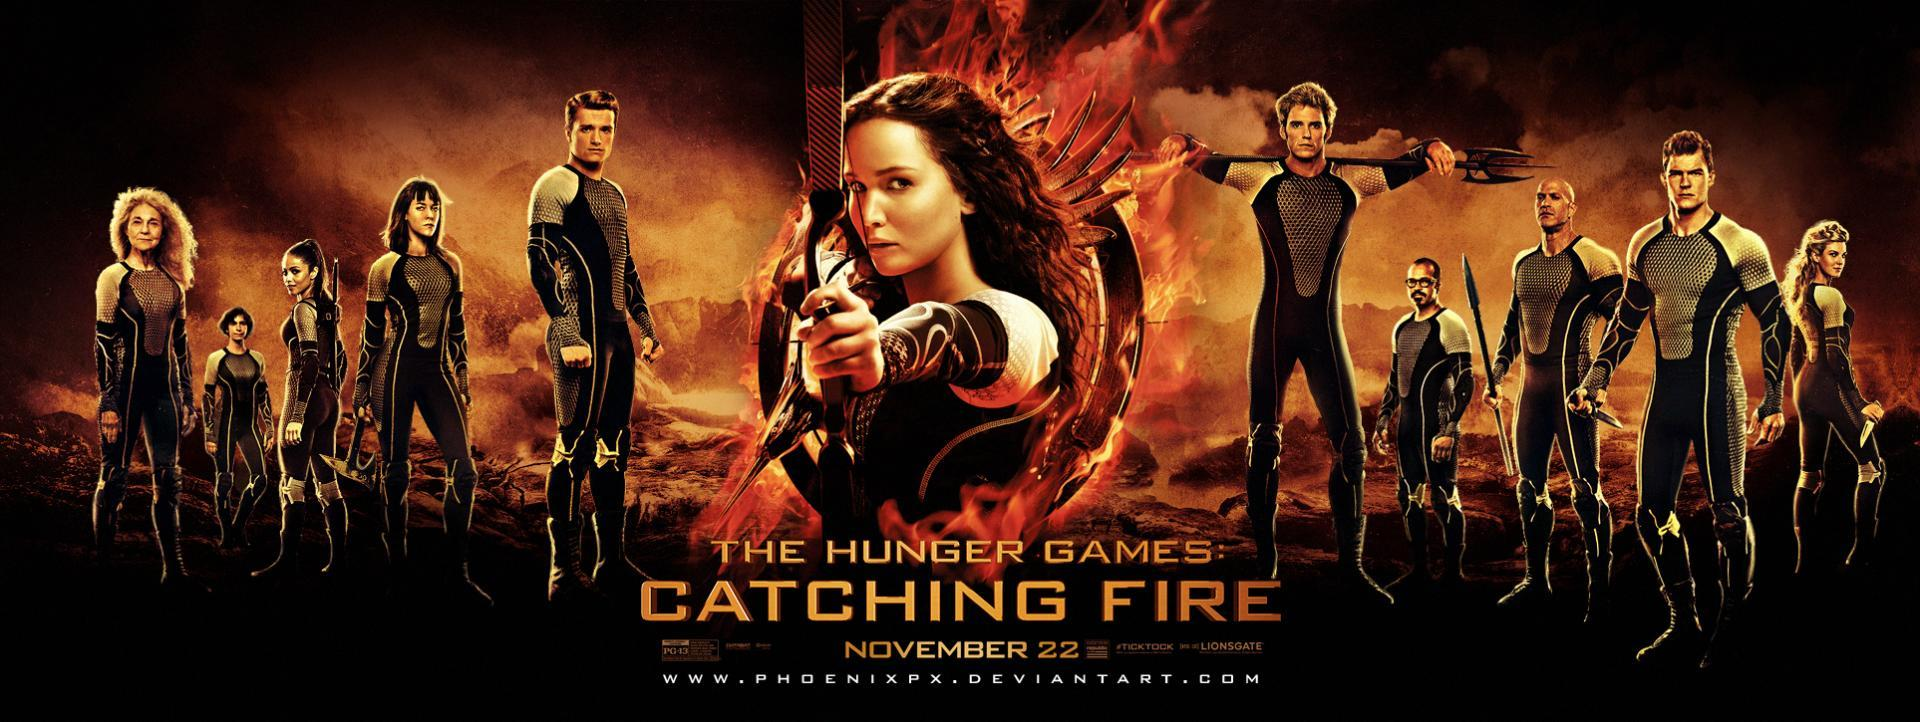 Image Gallery For The Hunger Games Catching Fire Filmaffinity